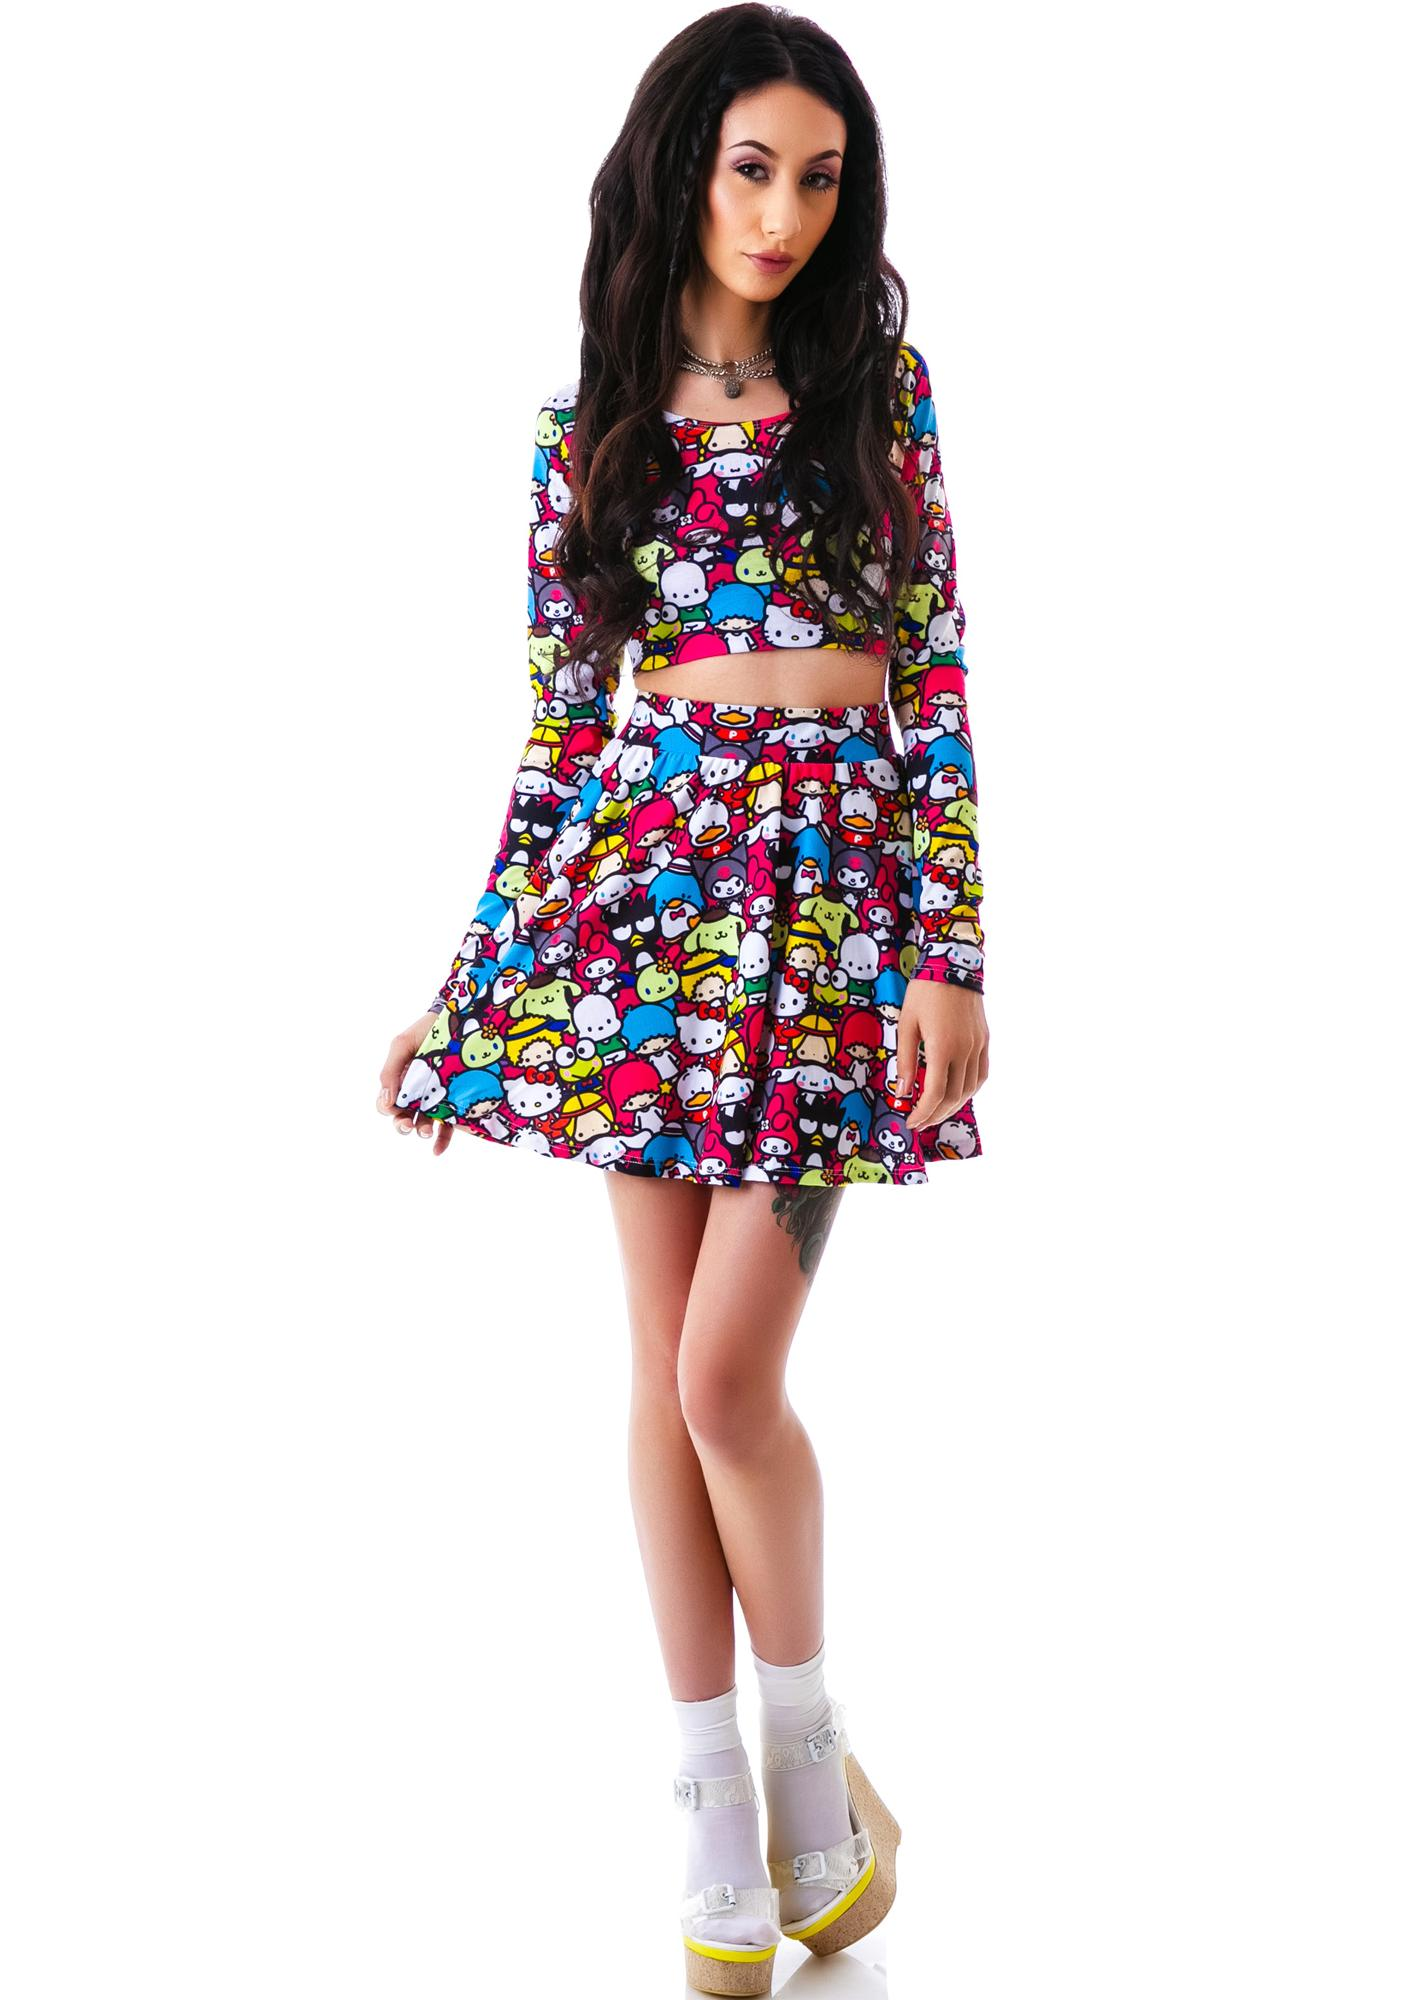 Japan L.A. Japan L.A. x Sanrio Friends Circle Skirt